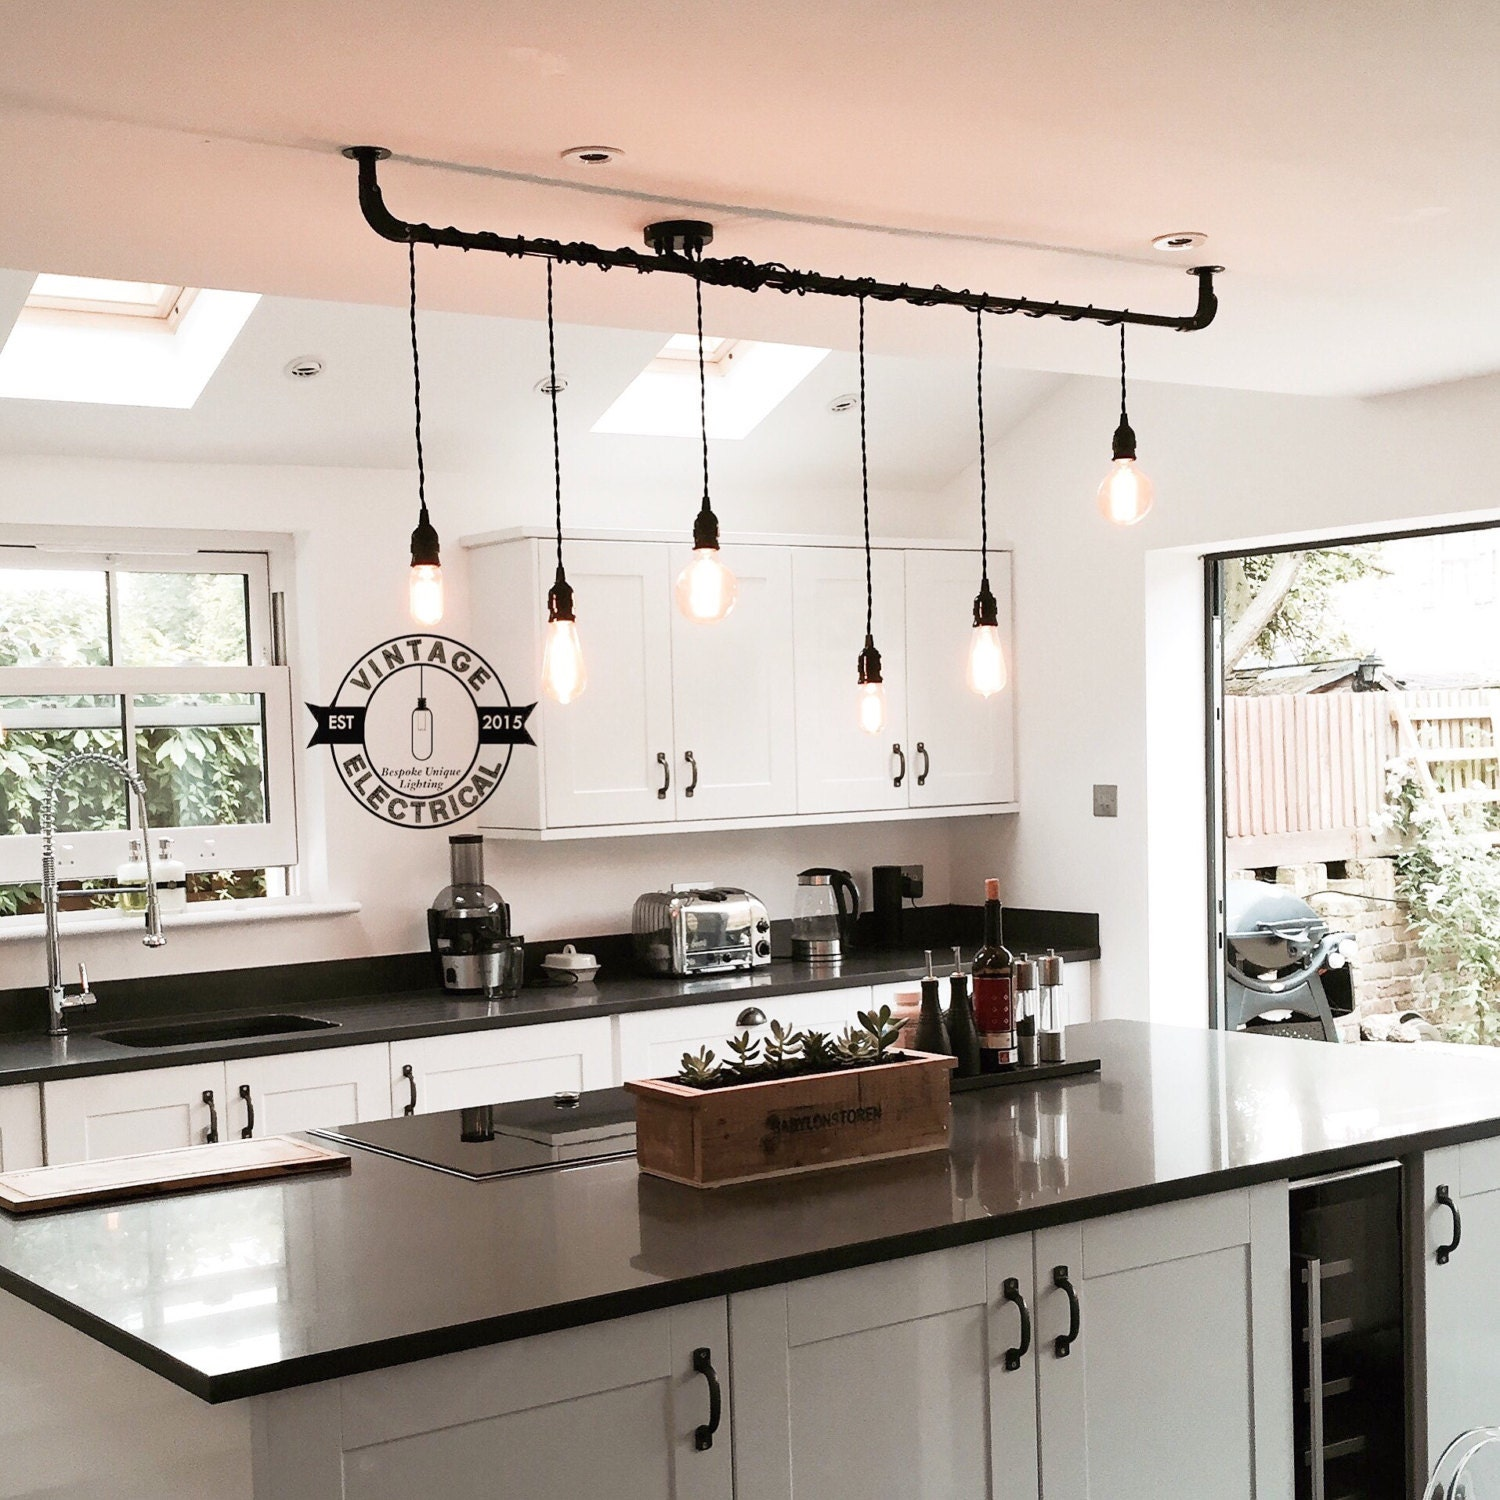 The Burnham 6 X Pendant Drop Light Hanging Lights Ceiling Dining Room Retro Kitchen Table E27 Vintage Edison Screw Filament